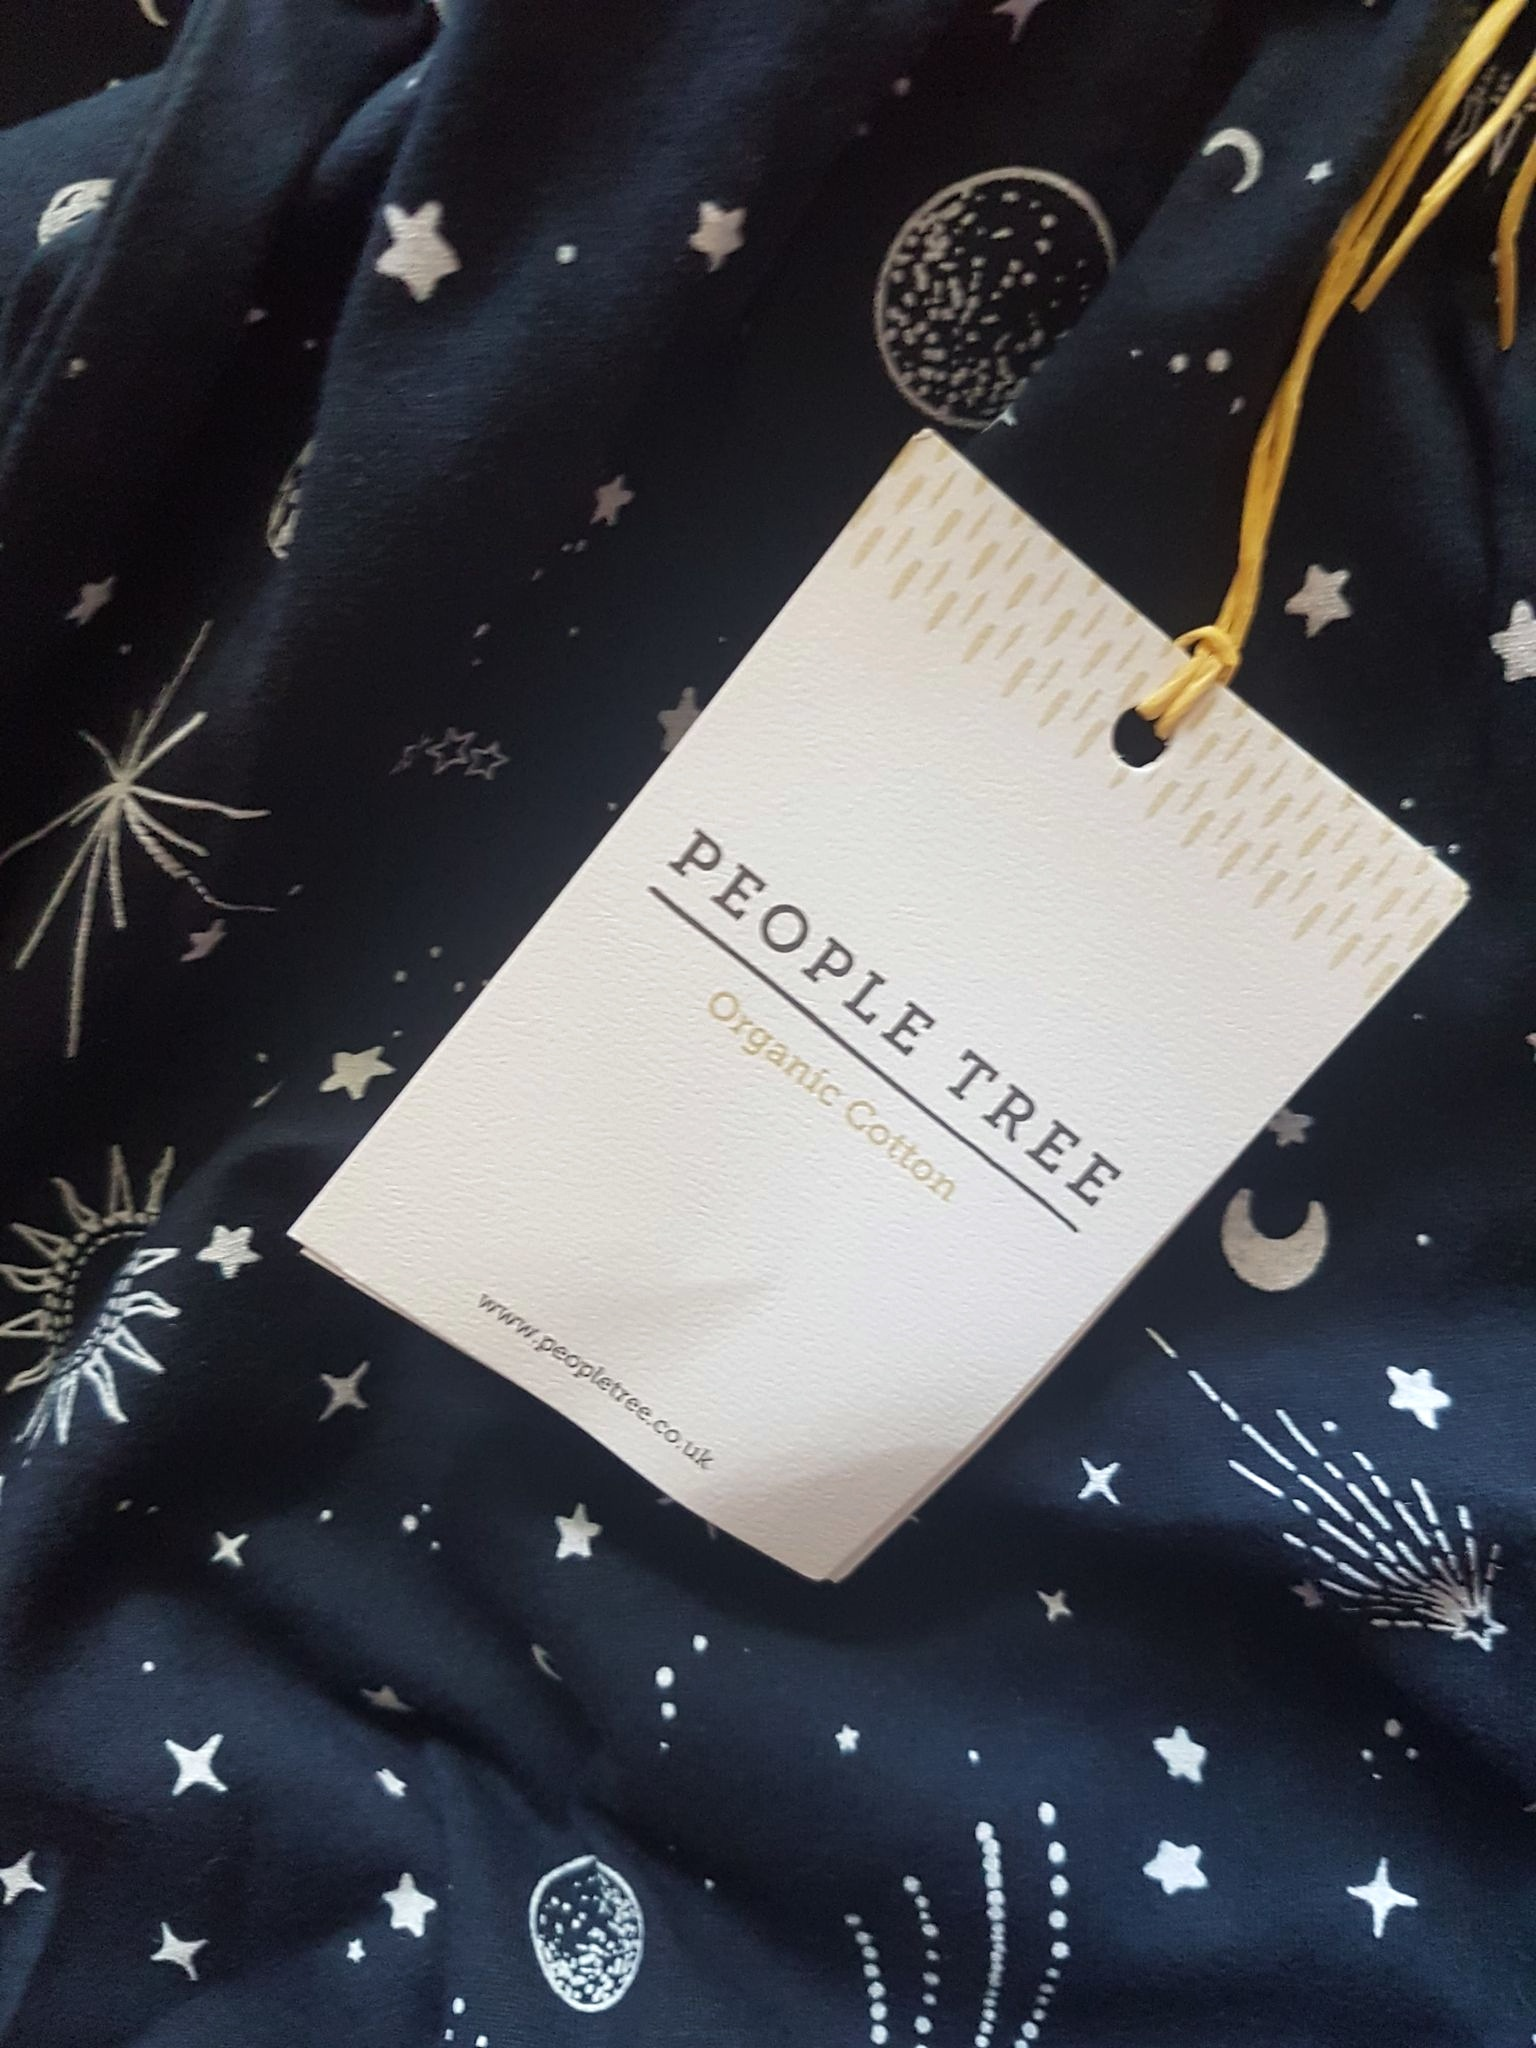 organic cotton navy blue pyjama bottoms with stars and constellations from People Tree